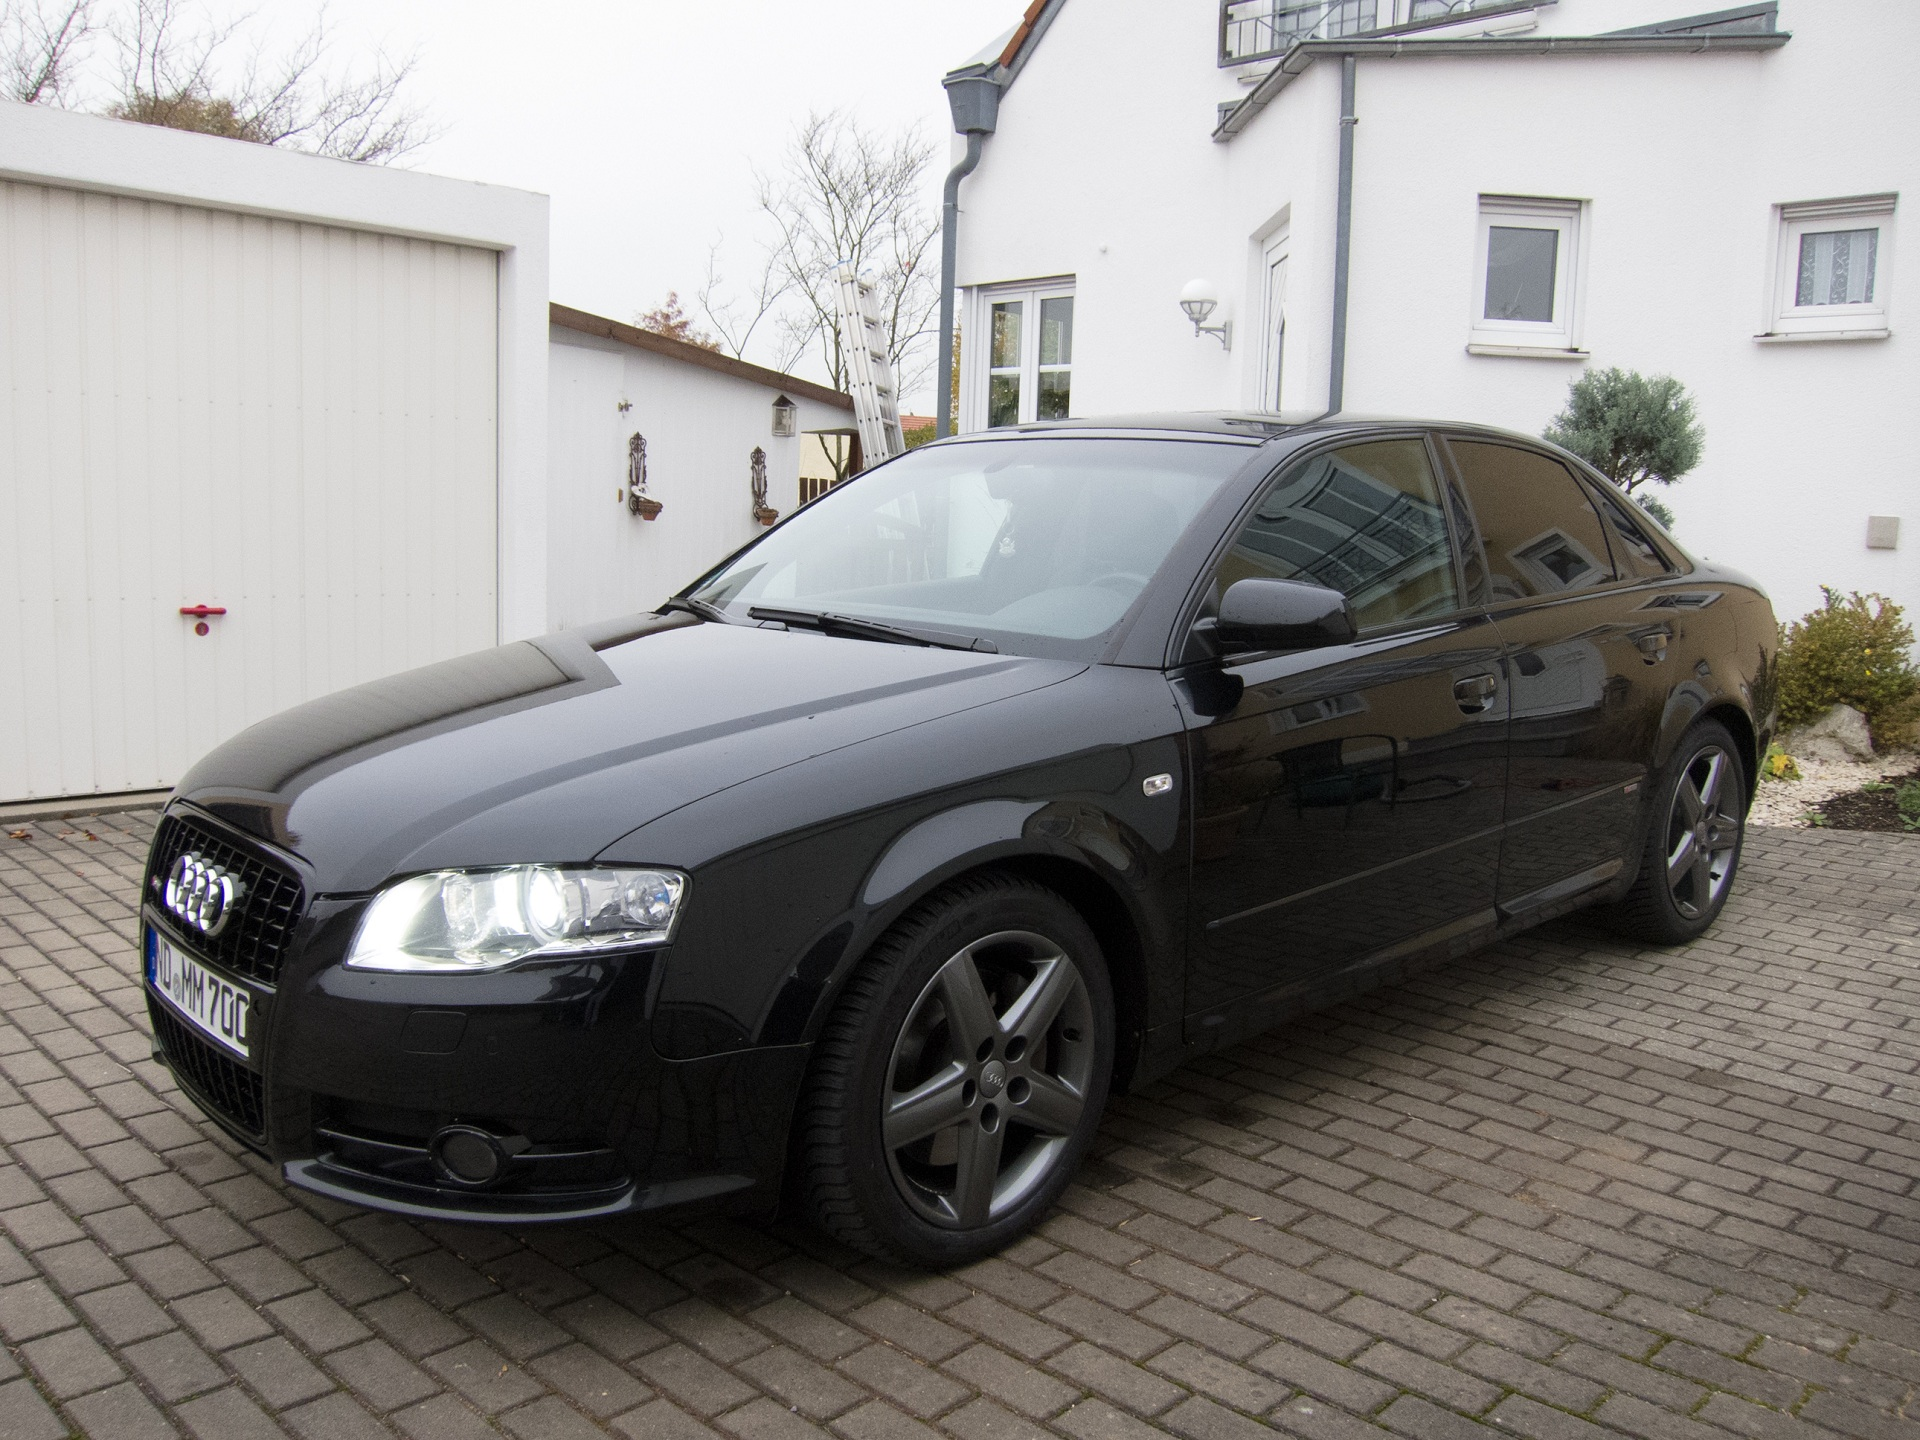 audi a4 3 0 tdi quattro recaro xenon s line plus biete. Black Bedroom Furniture Sets. Home Design Ideas